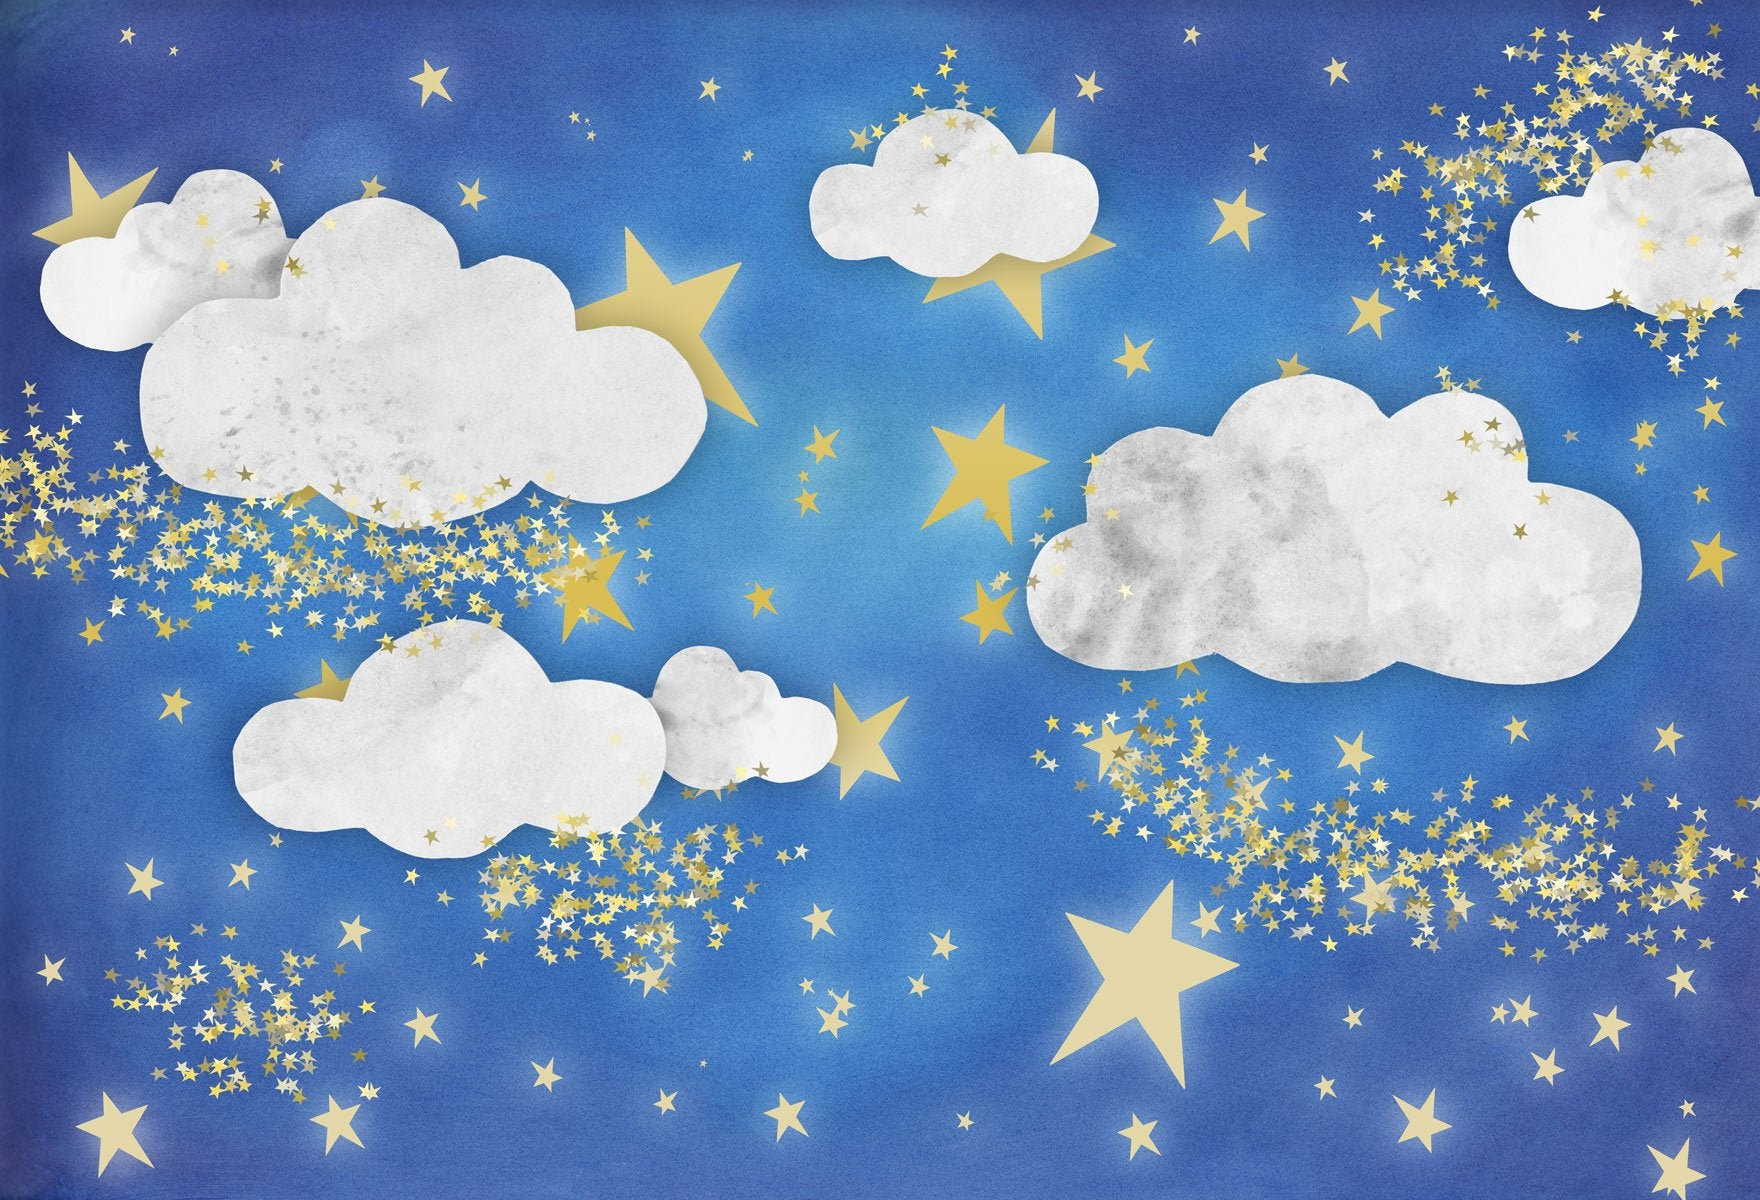 Load image into Gallery viewer, Kate Baby Skies Clouds With Tiny Stars Backdrop for Photography Designed by Mini MakeBelieve - Kate backdrops UK